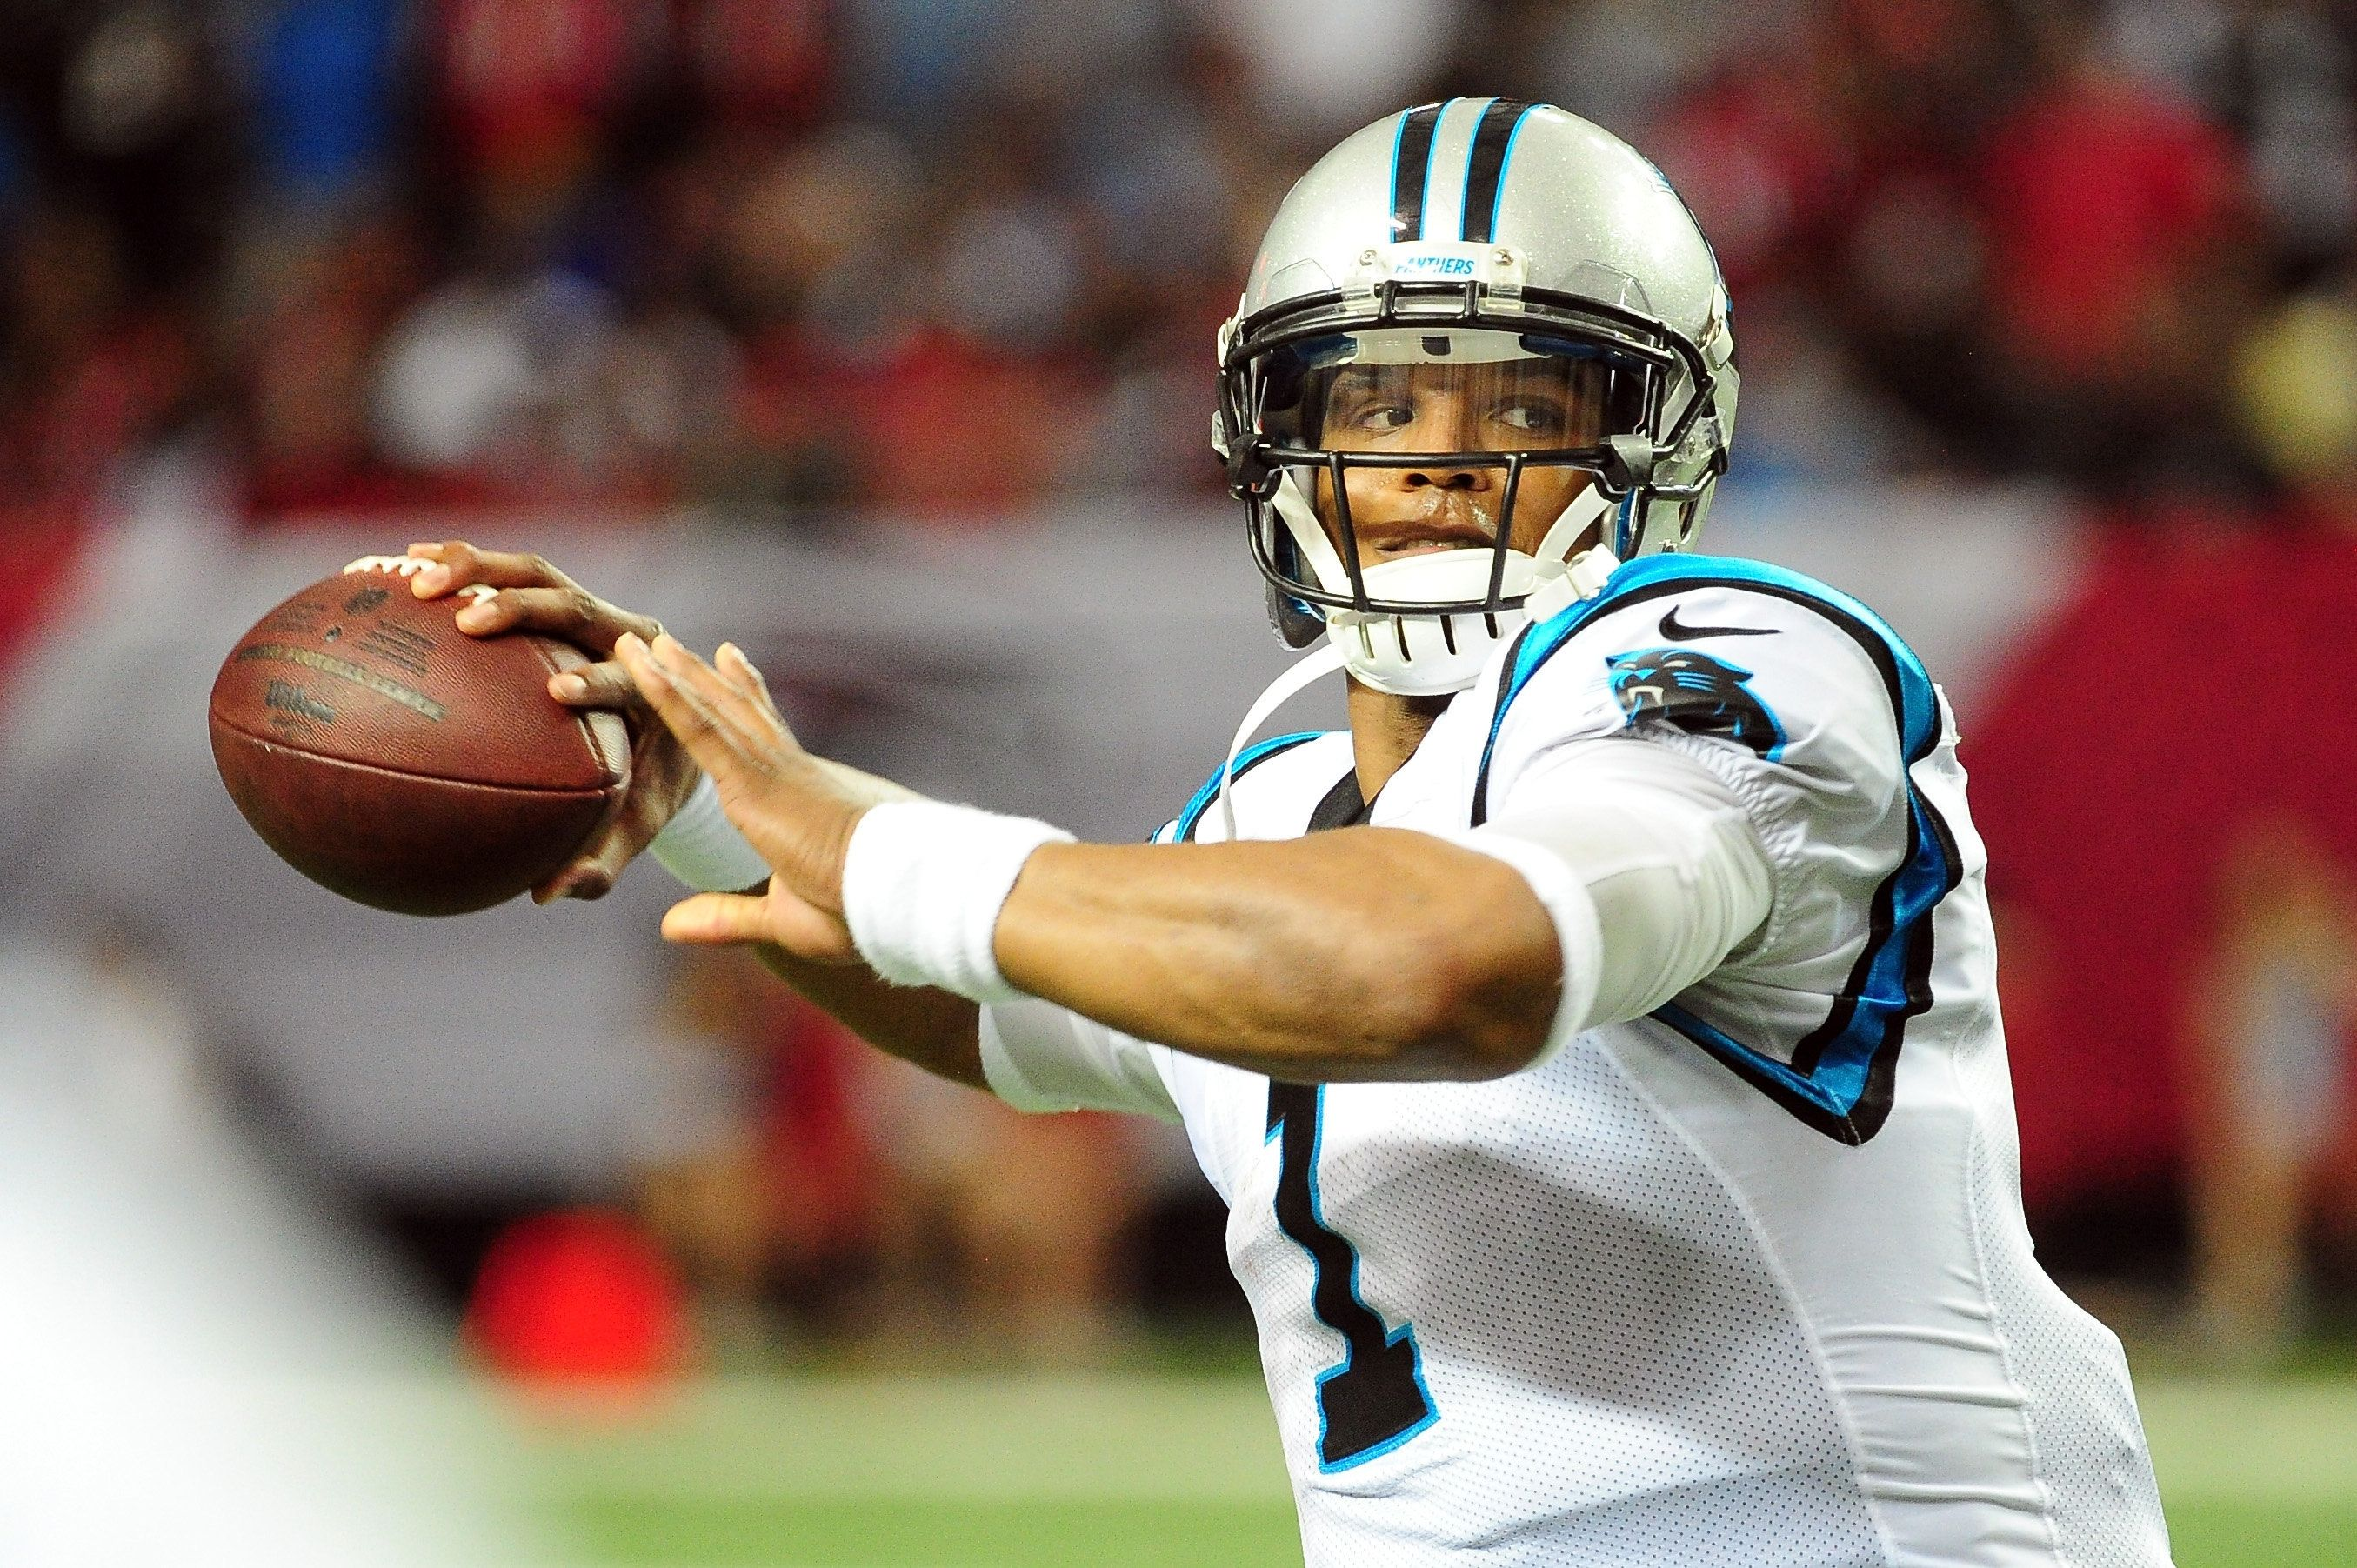 ATLANTA, GA - DECEMBER 27: Cam Newton #1 of the Carolina Panthers throws a pass during the second half against the Atlanta Falconss at the Georgia Dome on December 27, 2015 in Atlanta, Georgia.  (Photo by Scott Cunningham/Getty Images)